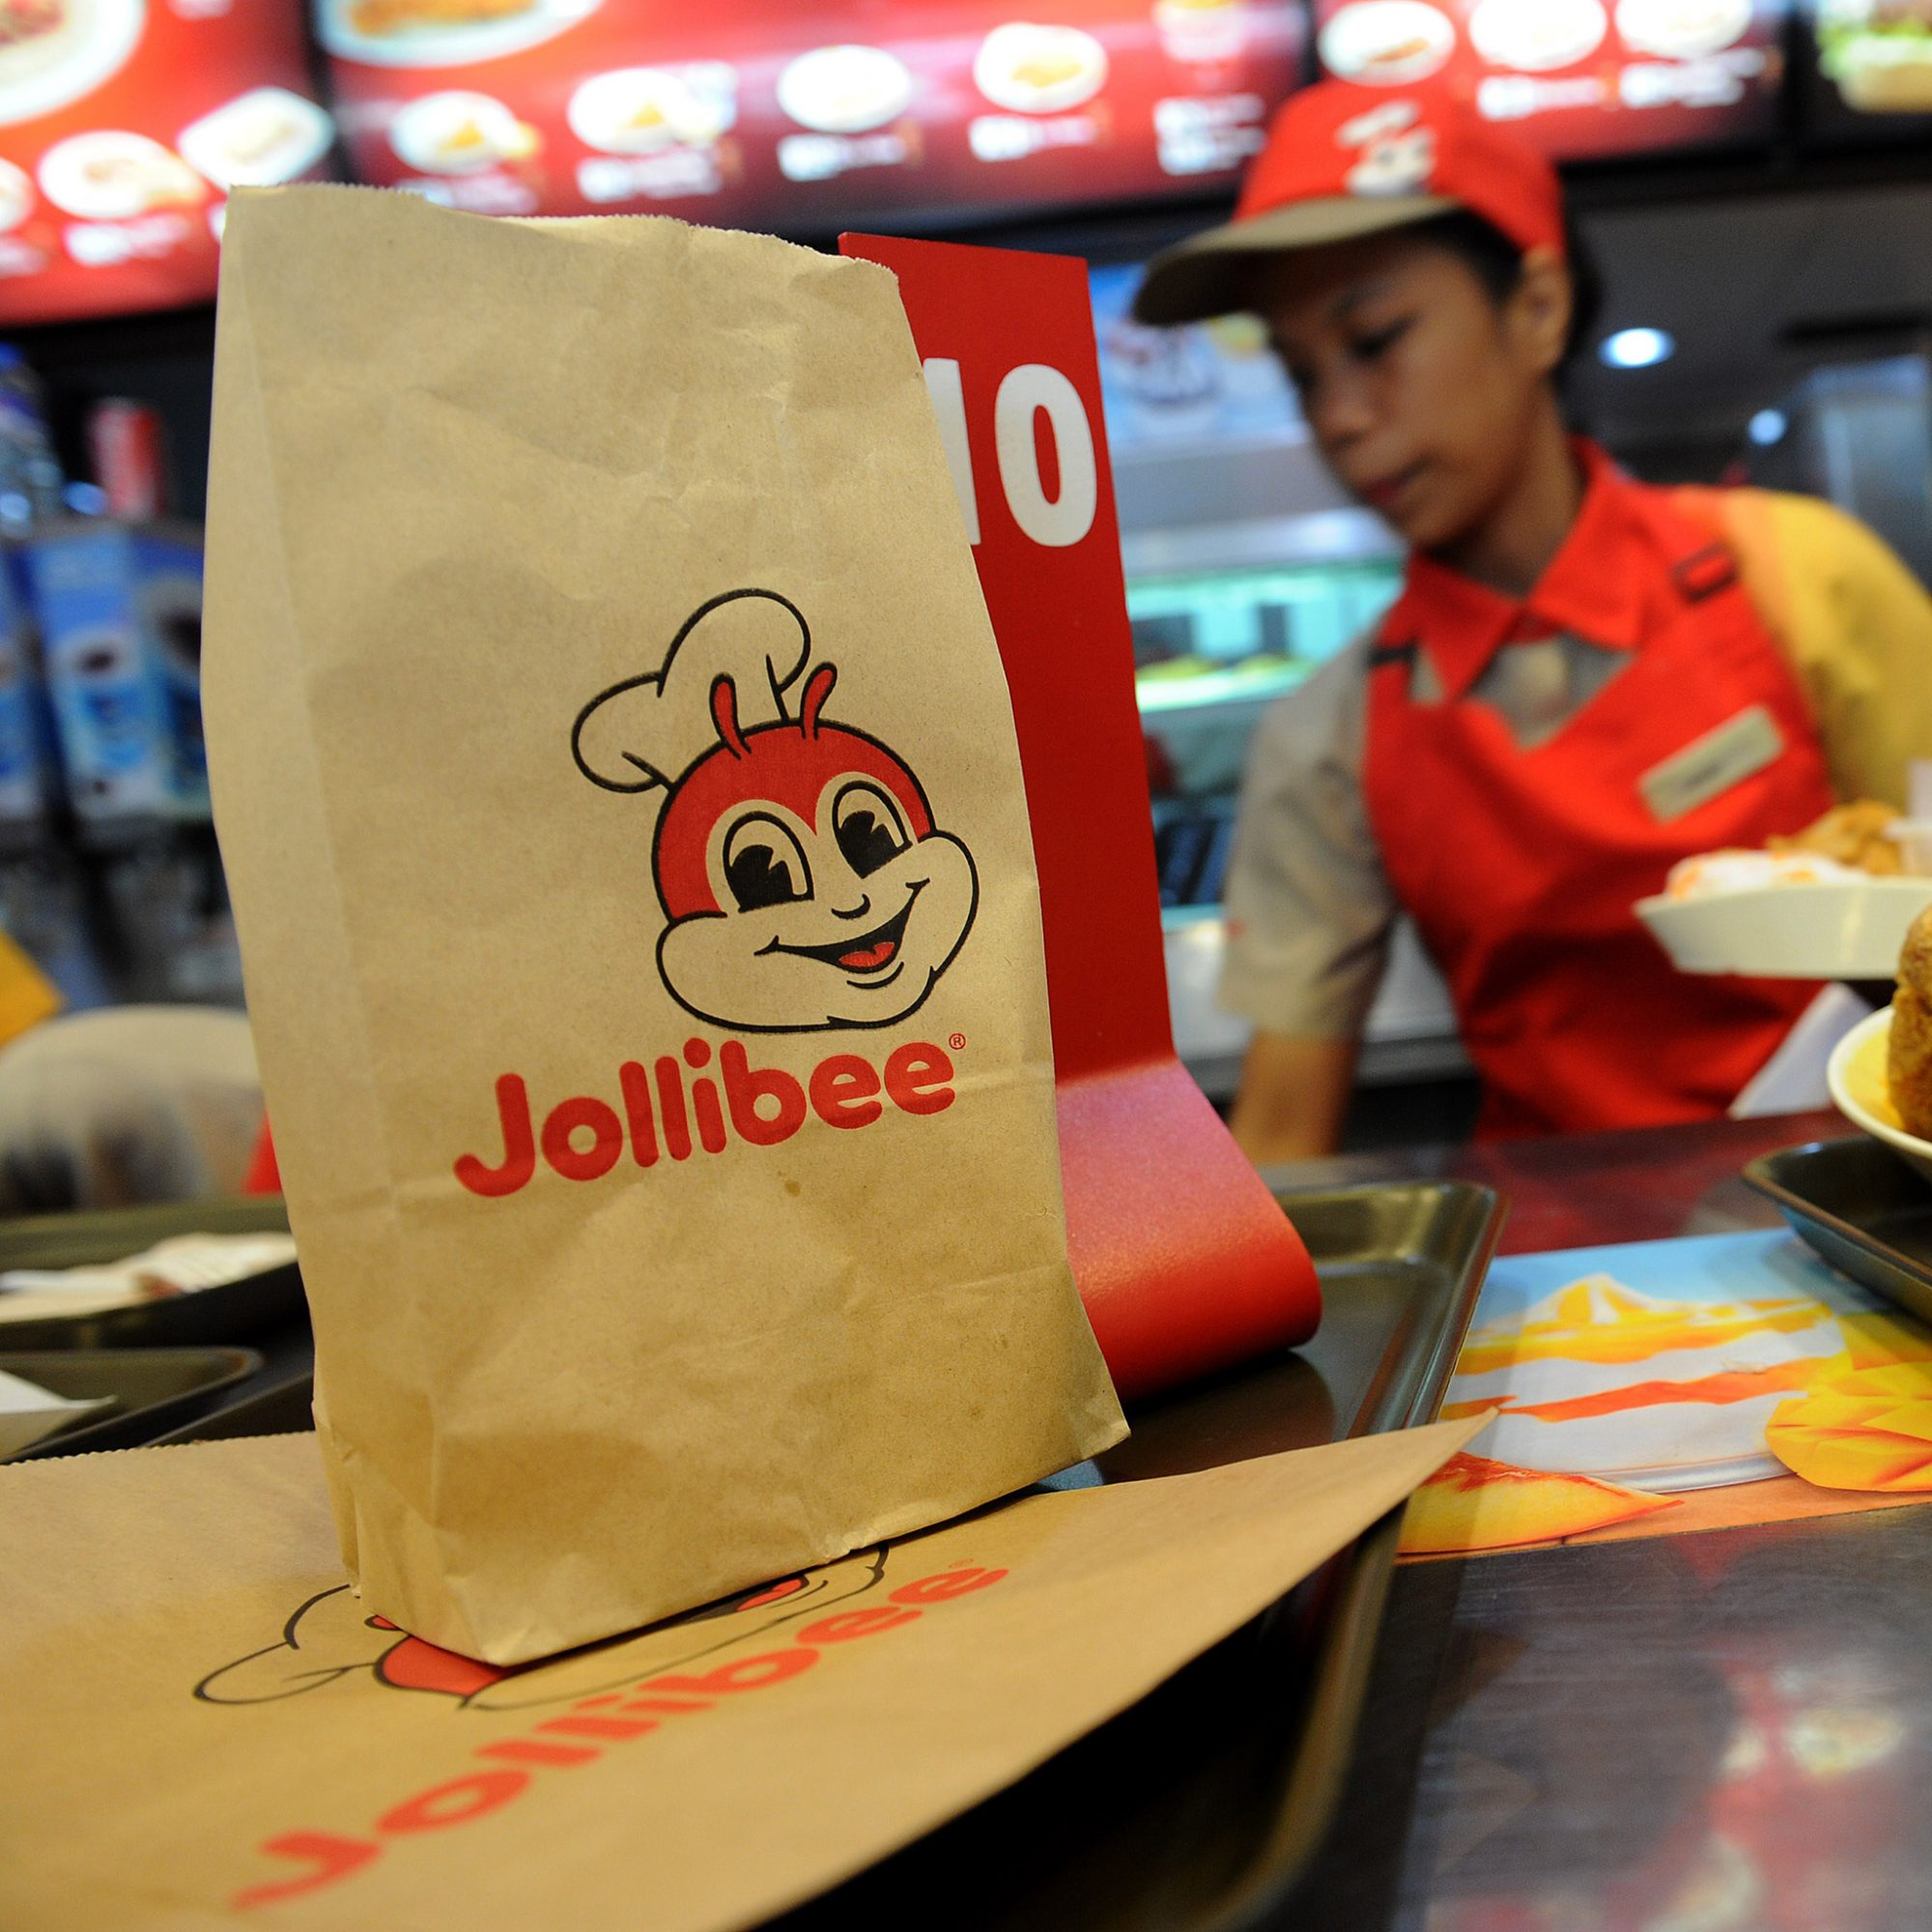 Jollibee, New York